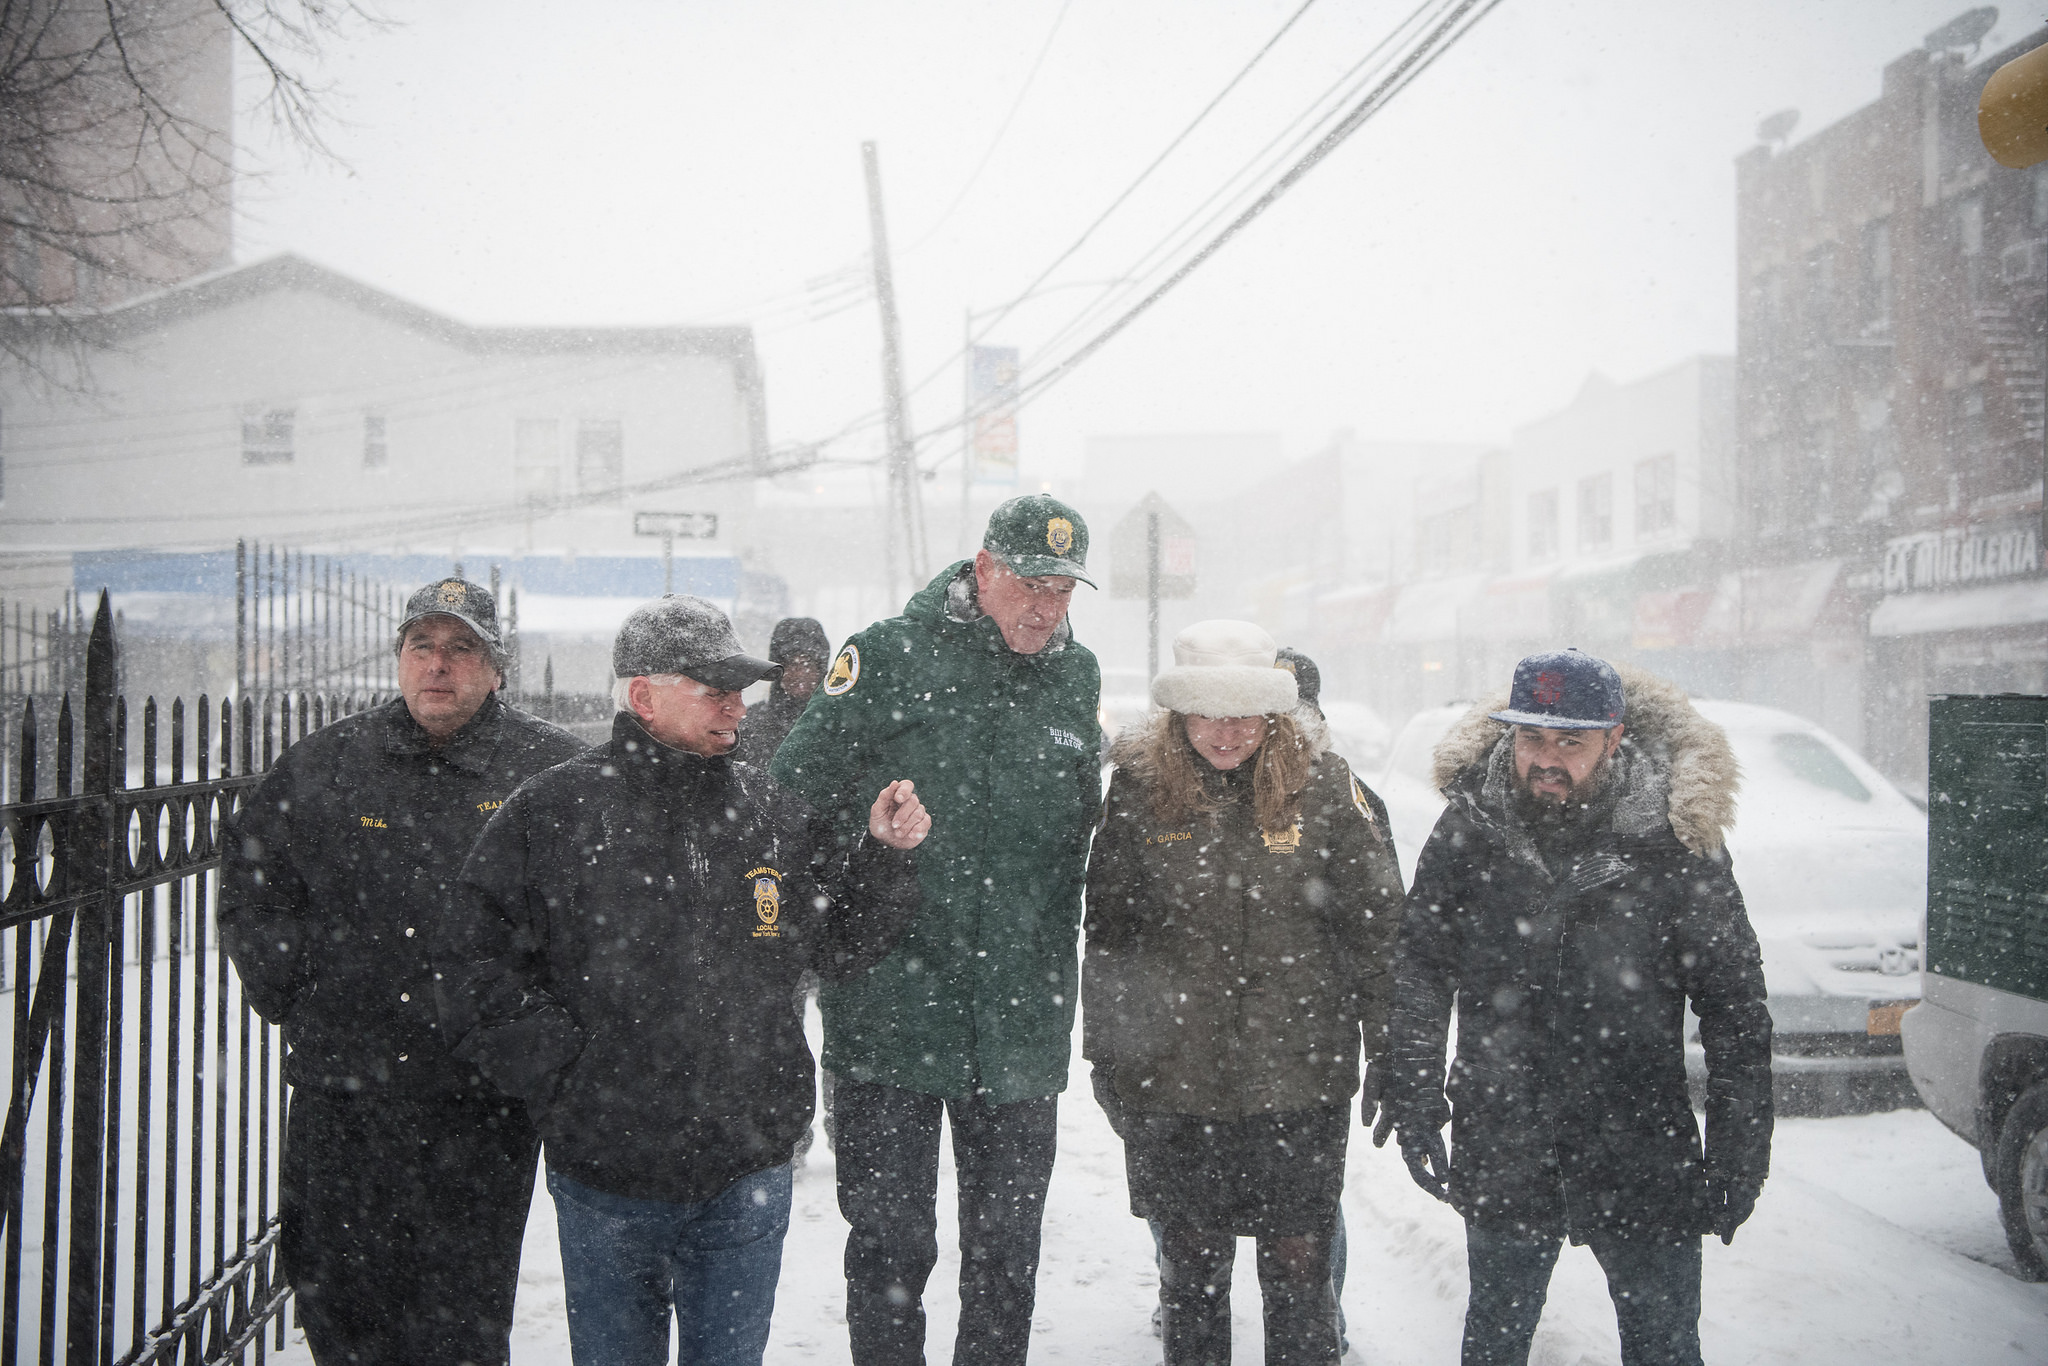 Mayor Bill de Blasio toured a snow-covered neighborhood in Queens with other city officials Thursday.